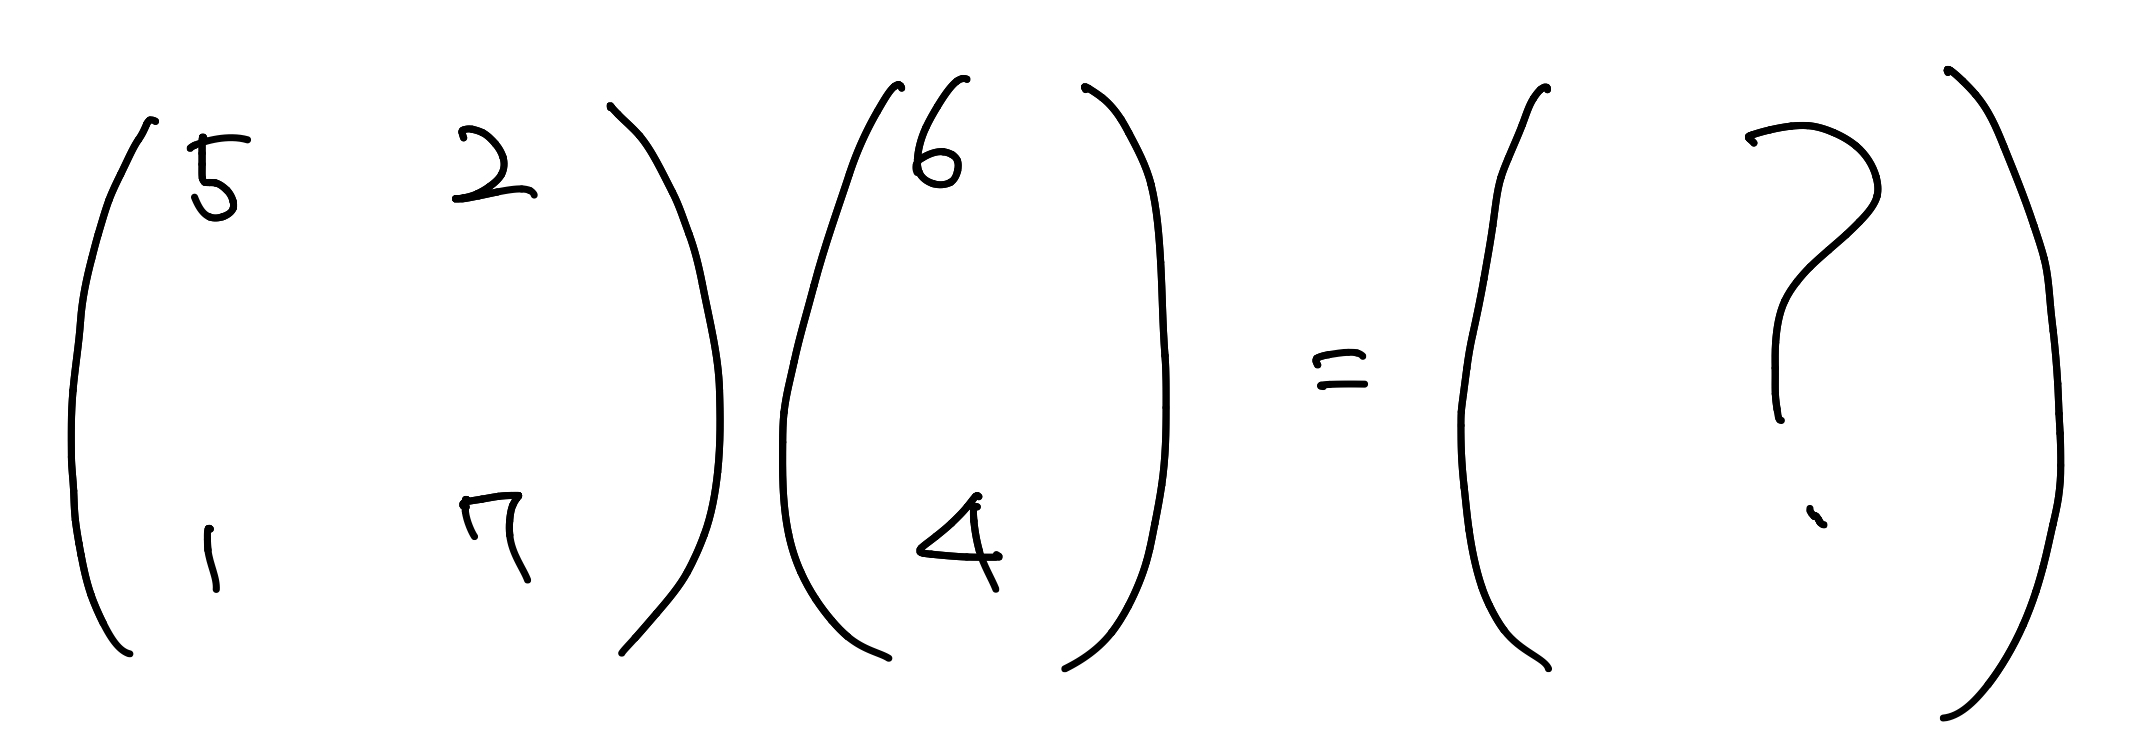 neuron matrix multiplication